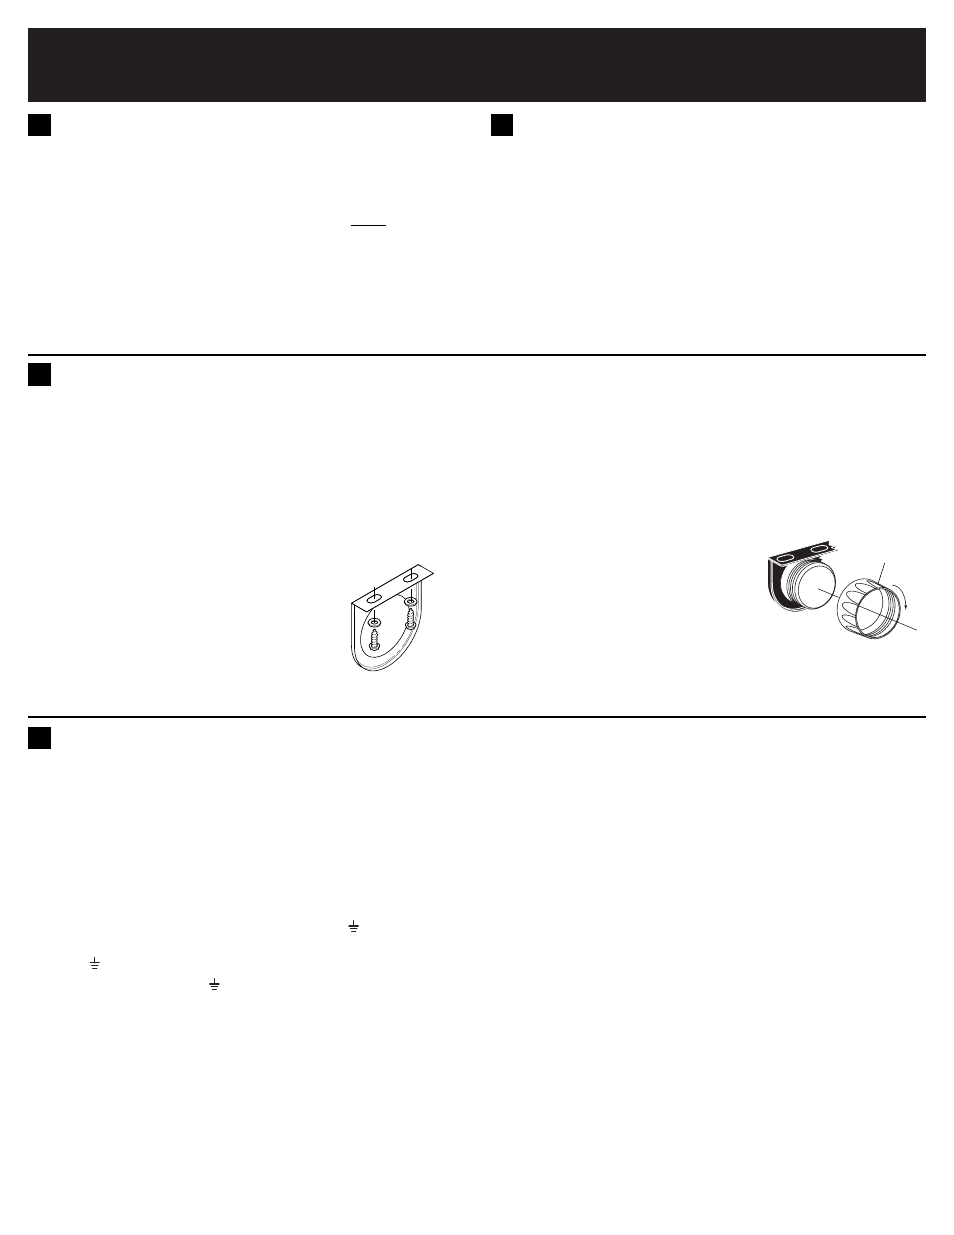 equus 8366 2 air_fuel ratio gauge page1 equus 8366 2 air fuel ratio gauge user manual 6 pages equus fuel gauge wiring diagram at panicattacktreatment.co